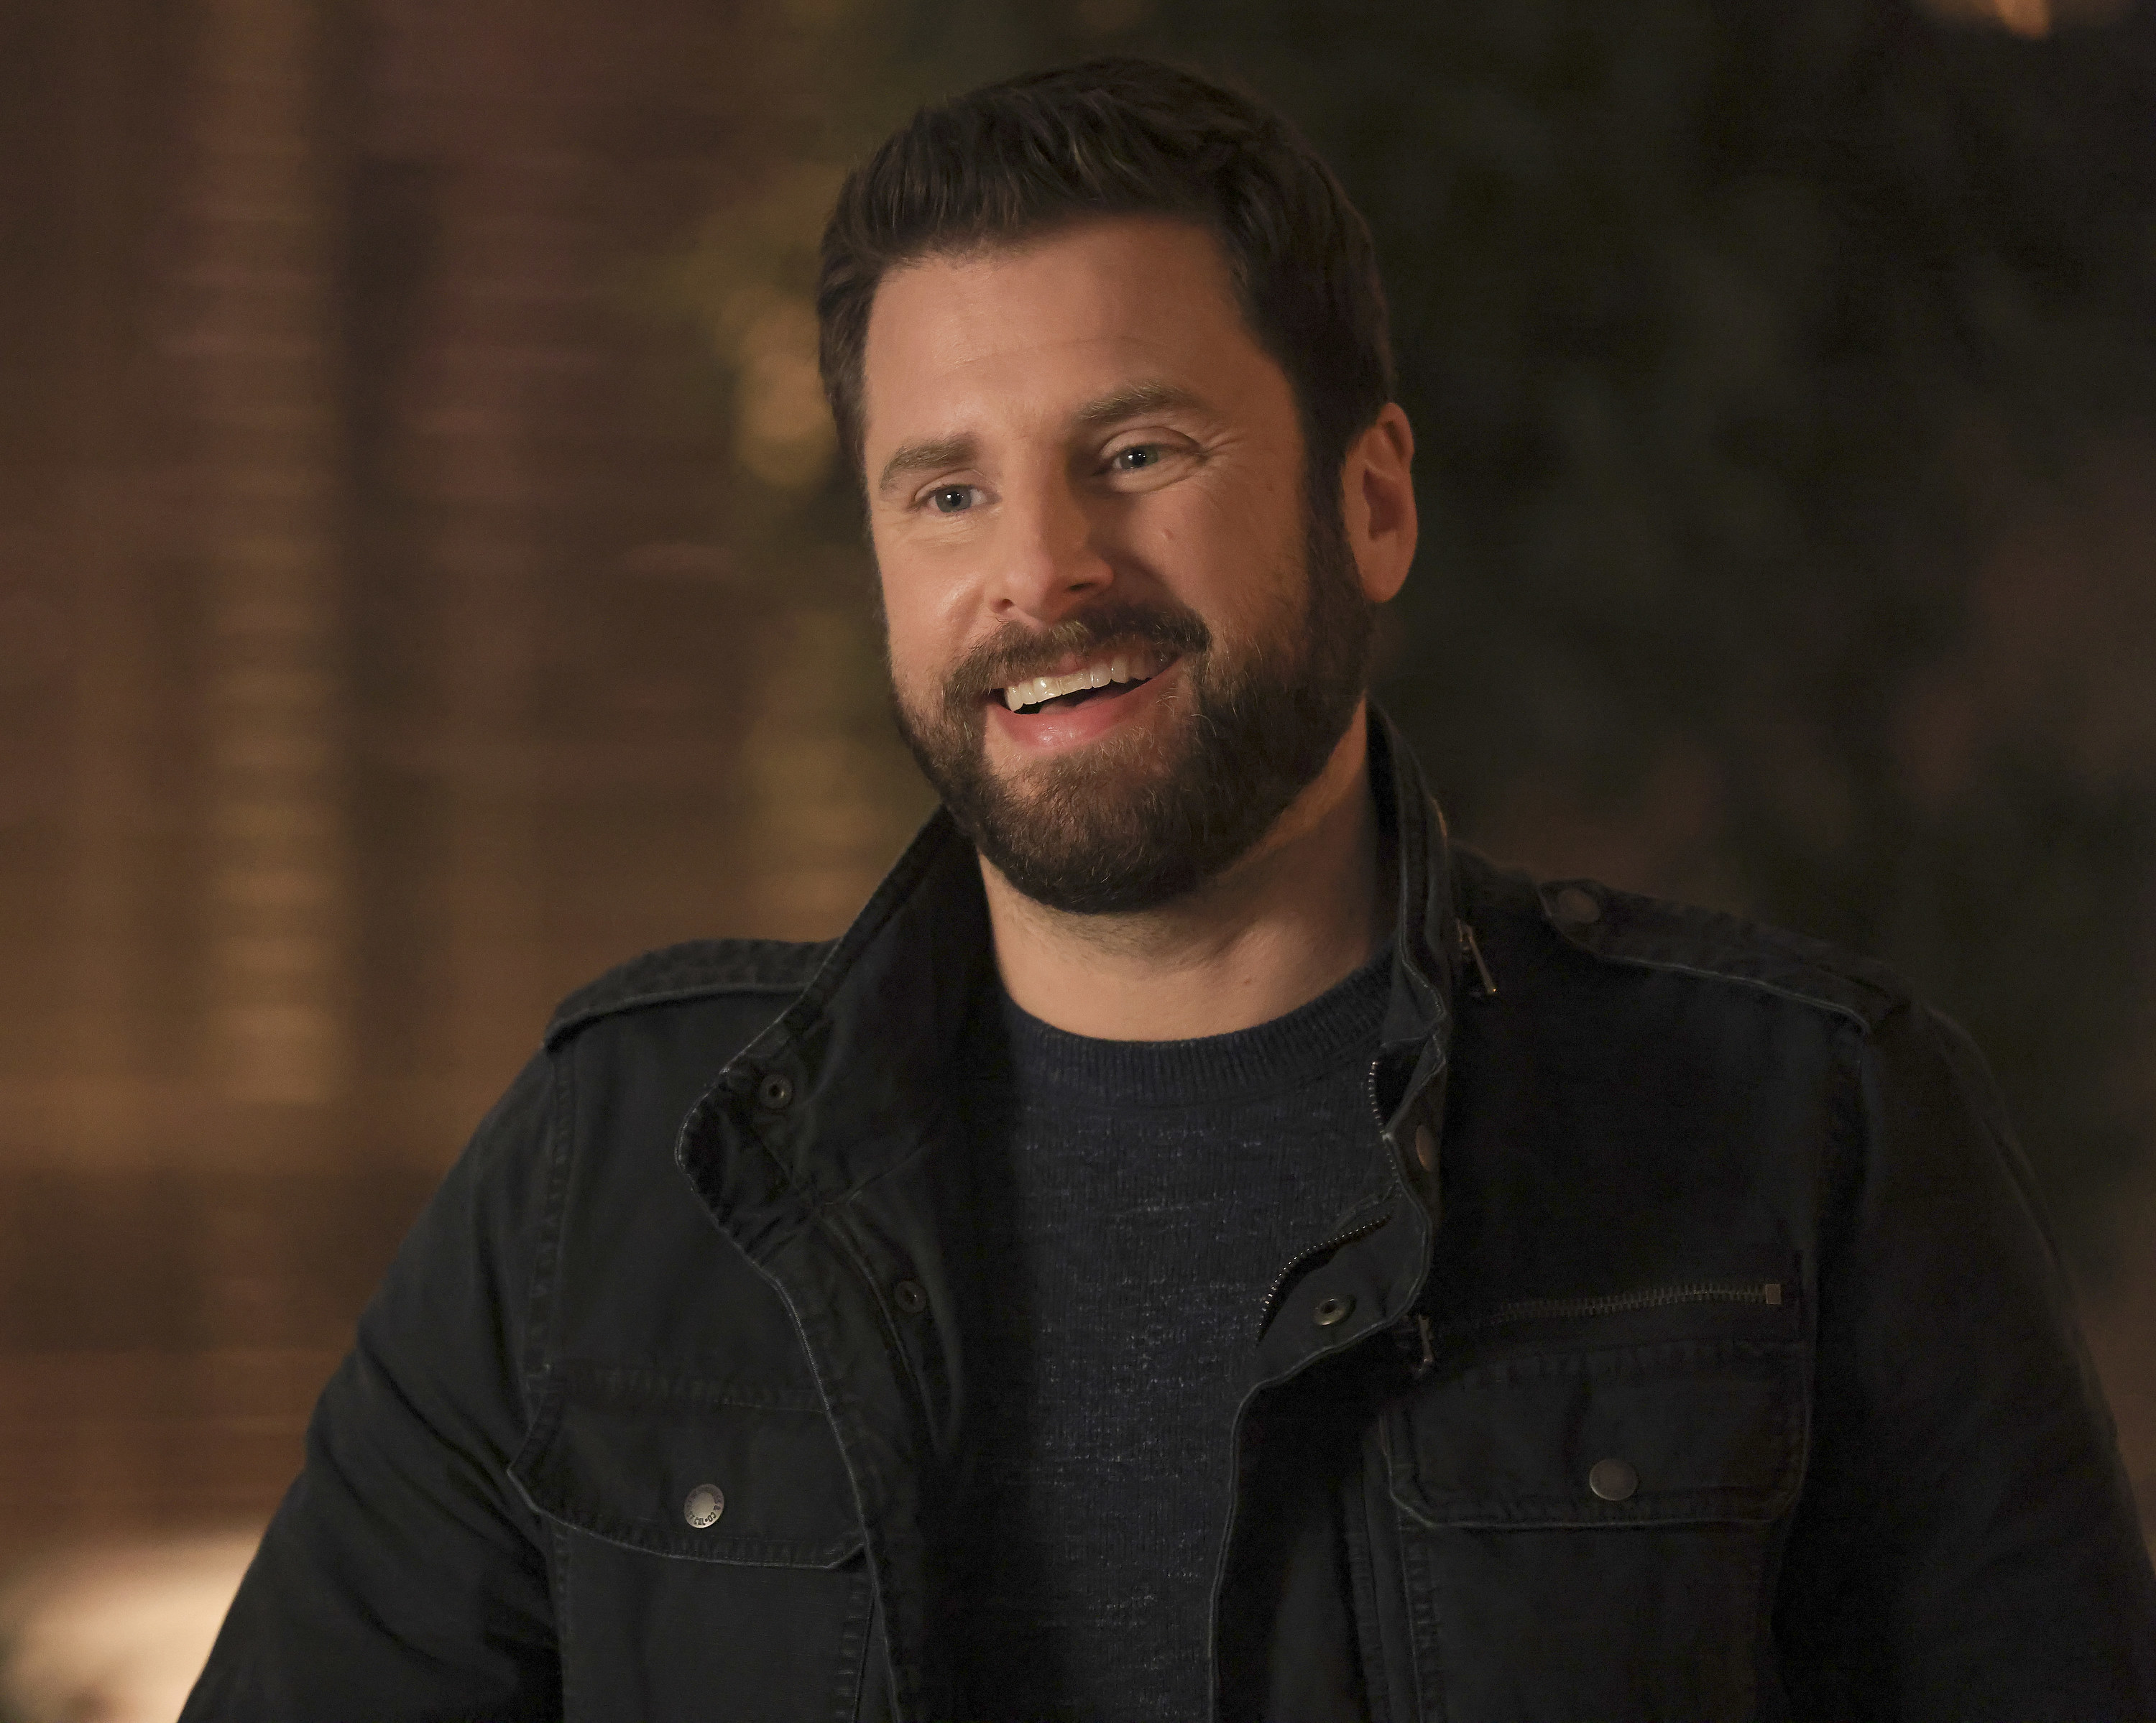 Photo of James Roday on ABC show A Million Little Things